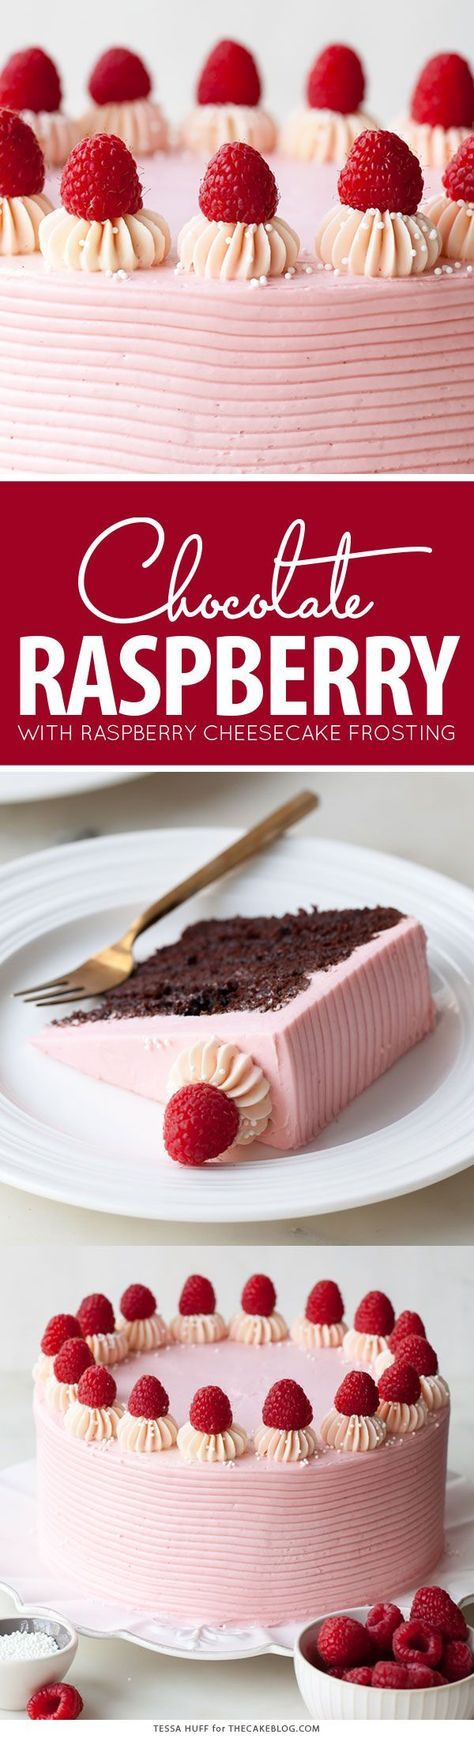 Chocolate Raspberry Cake - moist chocolate cake layered with raspberry jam, topped with raspberry cheesecake frosting and fresh red raspberries | by Tessa Huff for http://TheCakeBlog.com